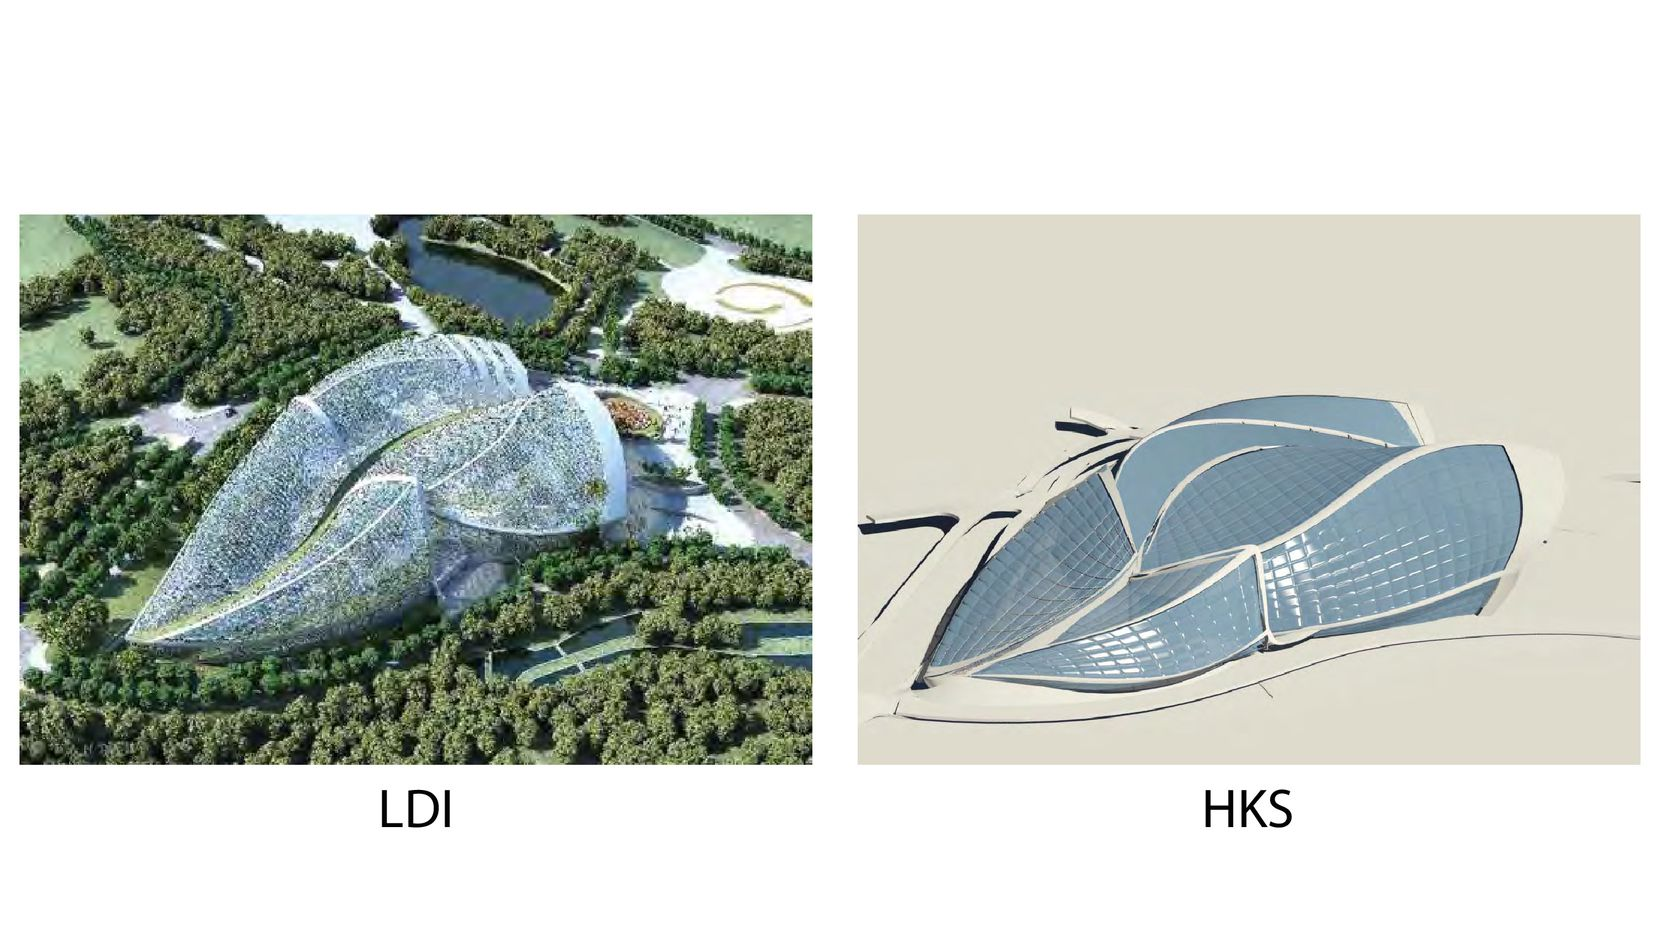 Dallas-based HKS won a design competition a few years ago for a high-profile horticulture expo in Qingdoa, China, only to have its plans ripped off without compensation, said Ralph Hawkins, the firm's chairman emeritus. A side-by-side rendering of HKS' design and the one ultimately done by a local design institute in China shows the similarities. (Courtesy of Ralph Hawkins/HKS)